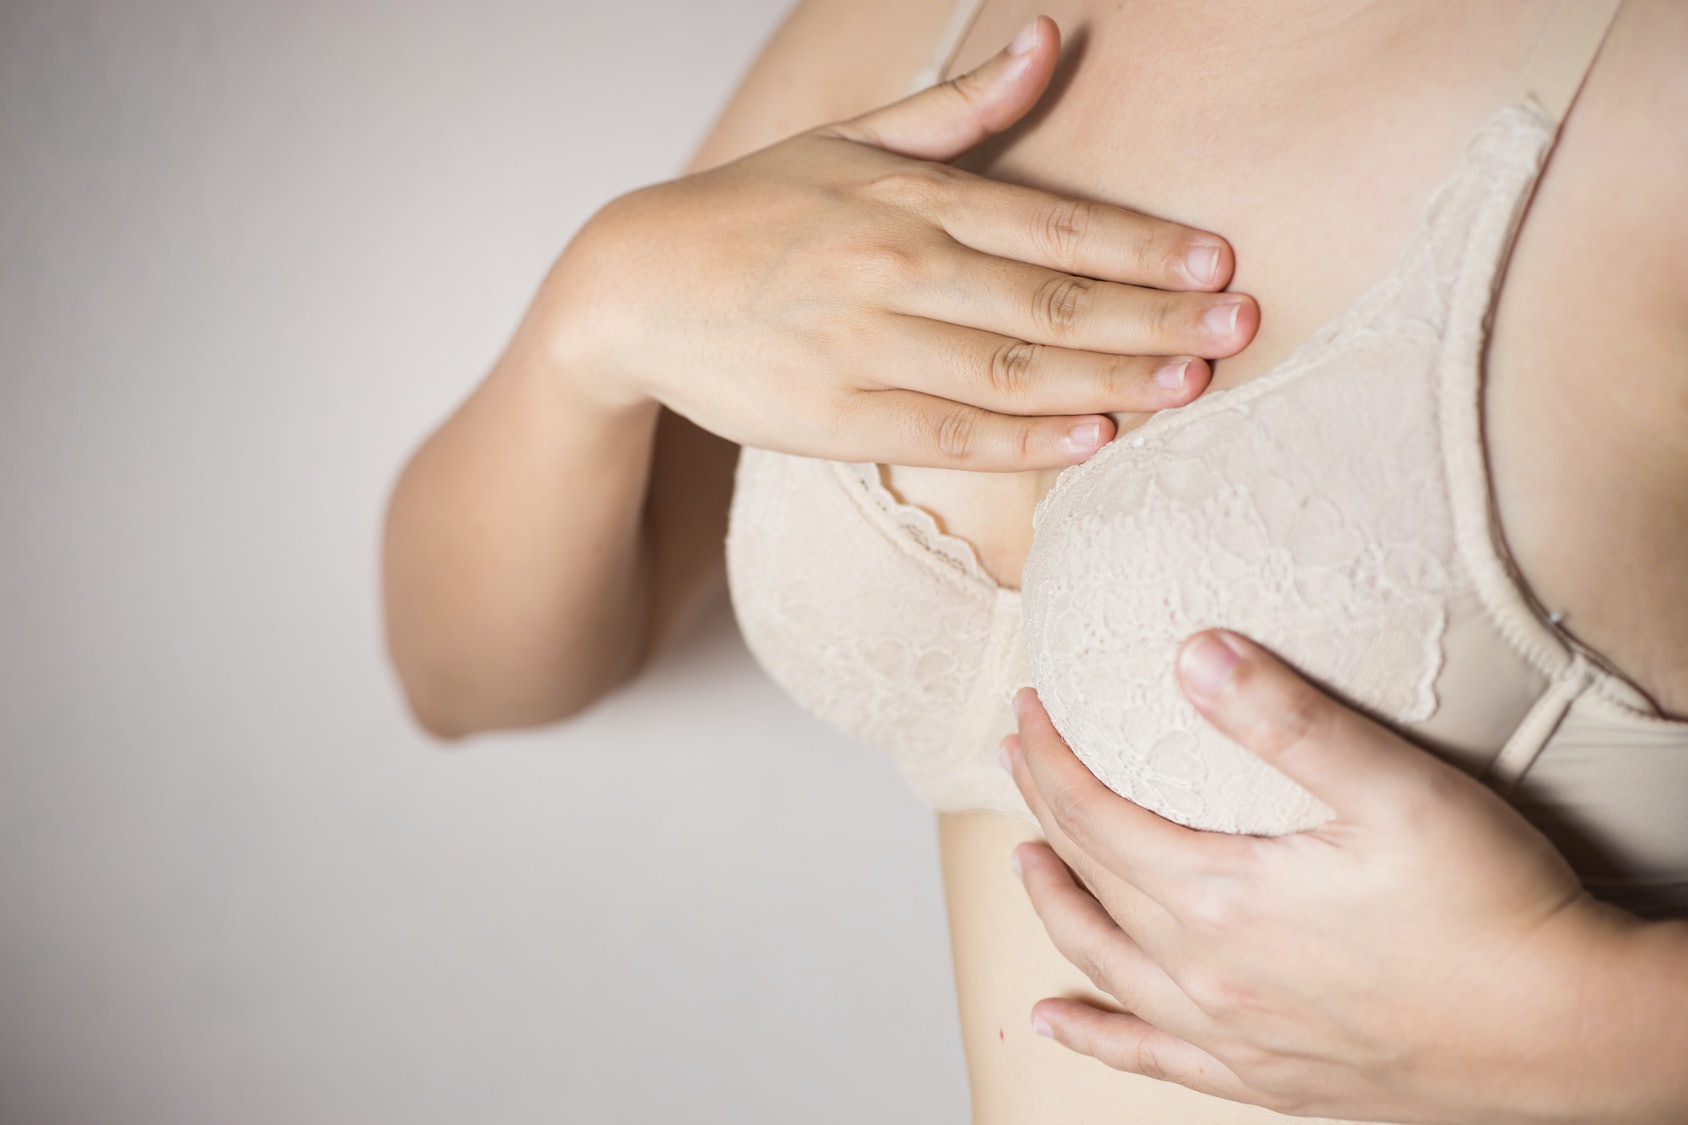 15 Interesting Physical Signs You're Wearing The Wrong Bra